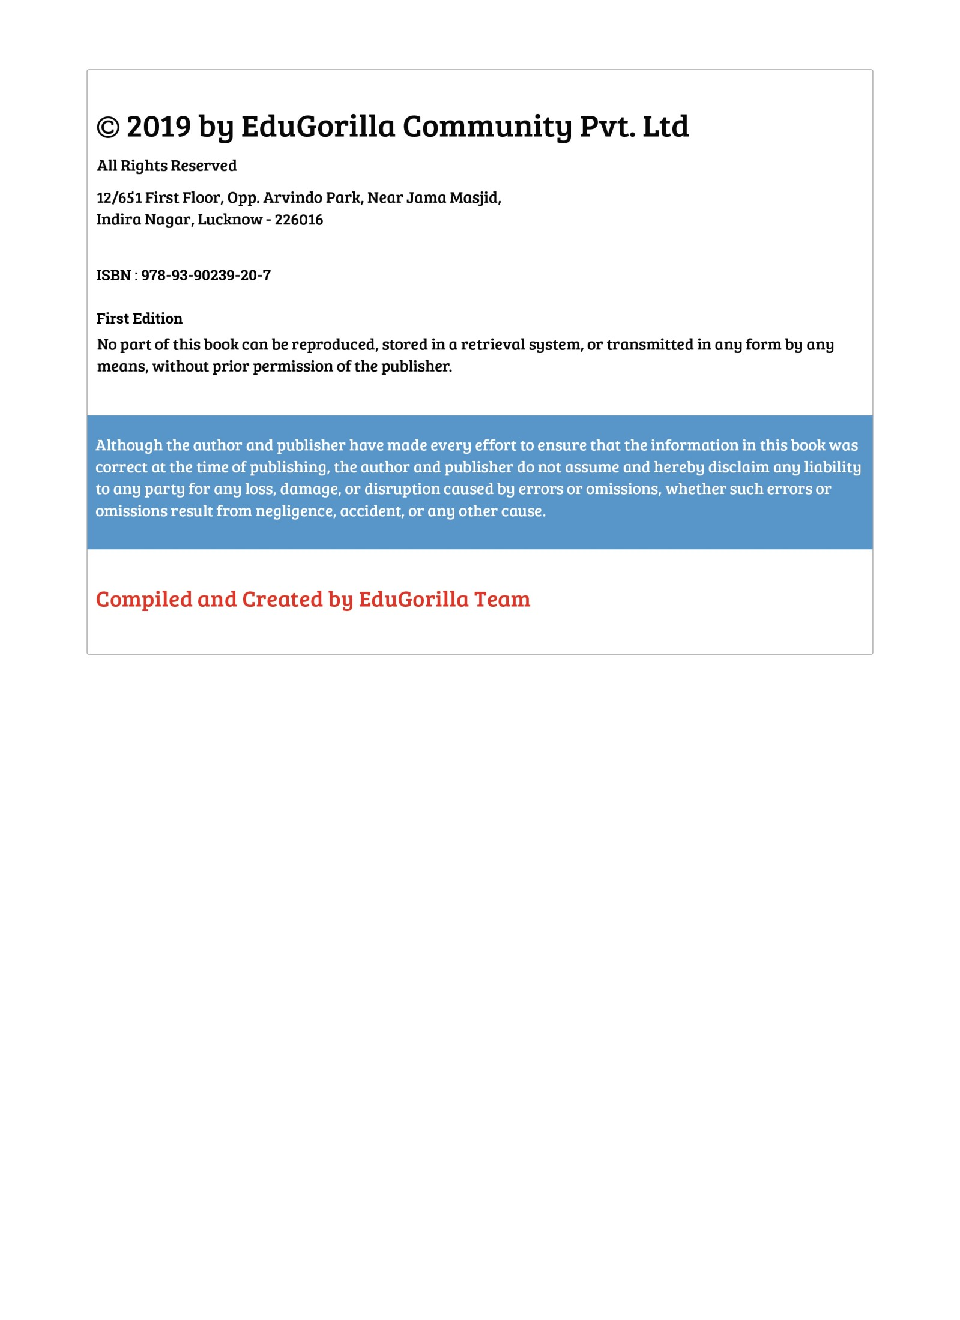 EduGorilla UCEED Entrance Exam 2020 | 10 Mock Test For Complete Preparation - Page 4